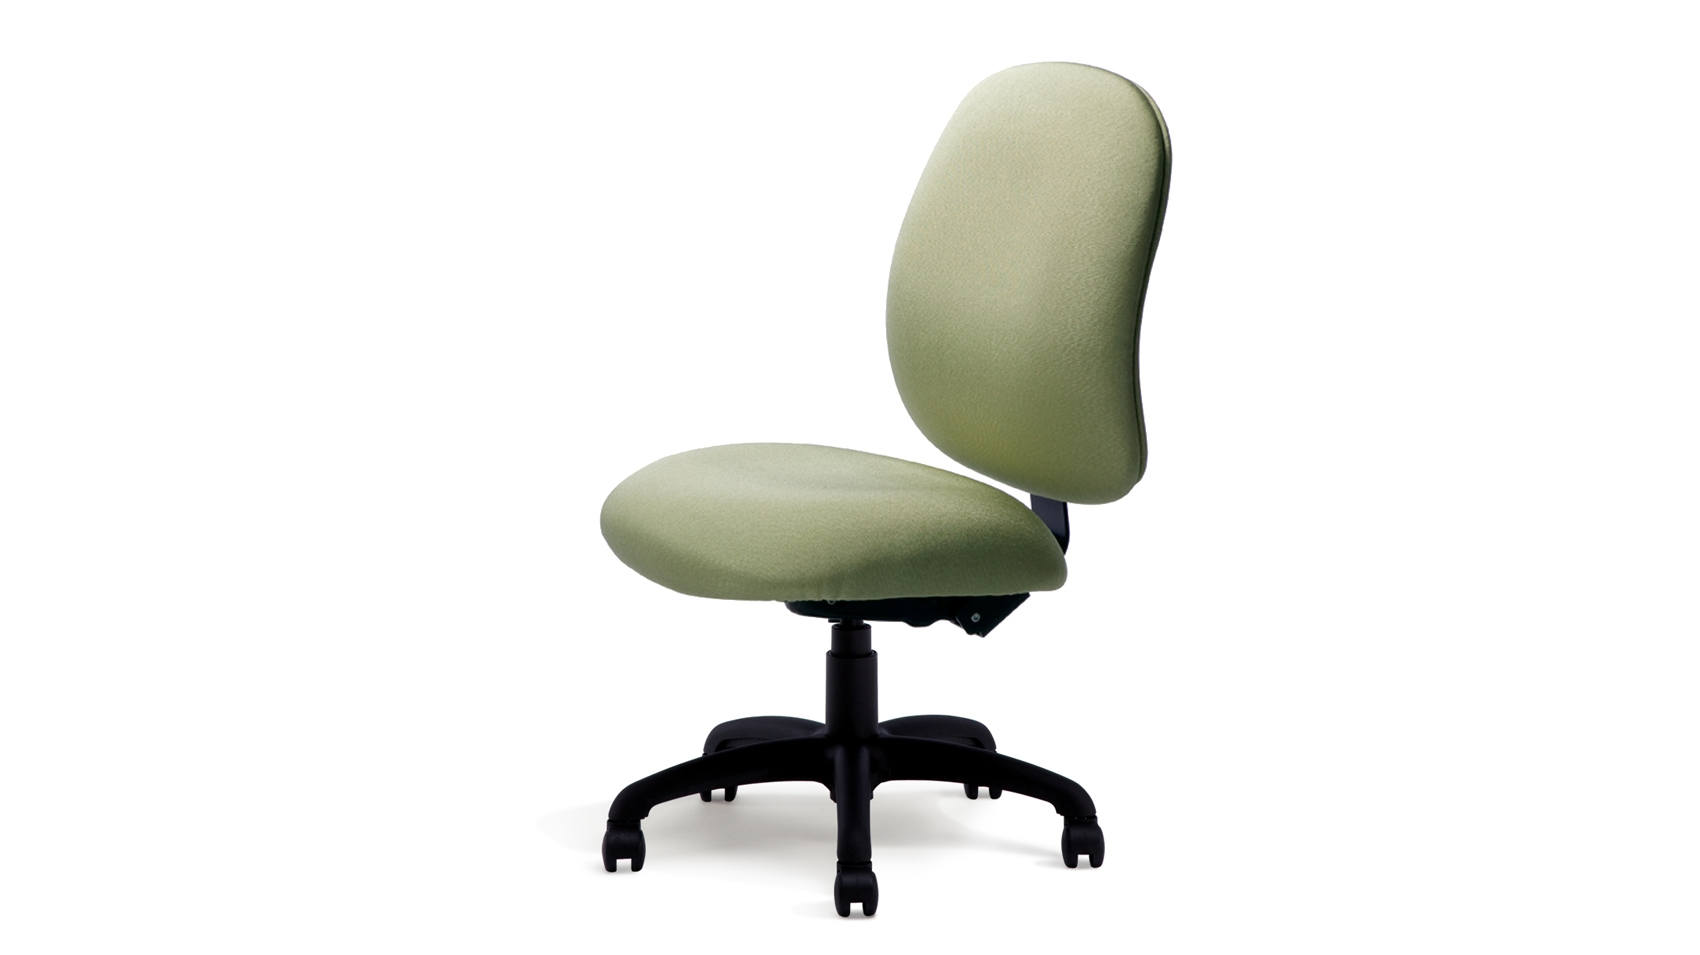 Plush Office Chair Wow Highmark Sprint Plush Office Chairs Seating Made